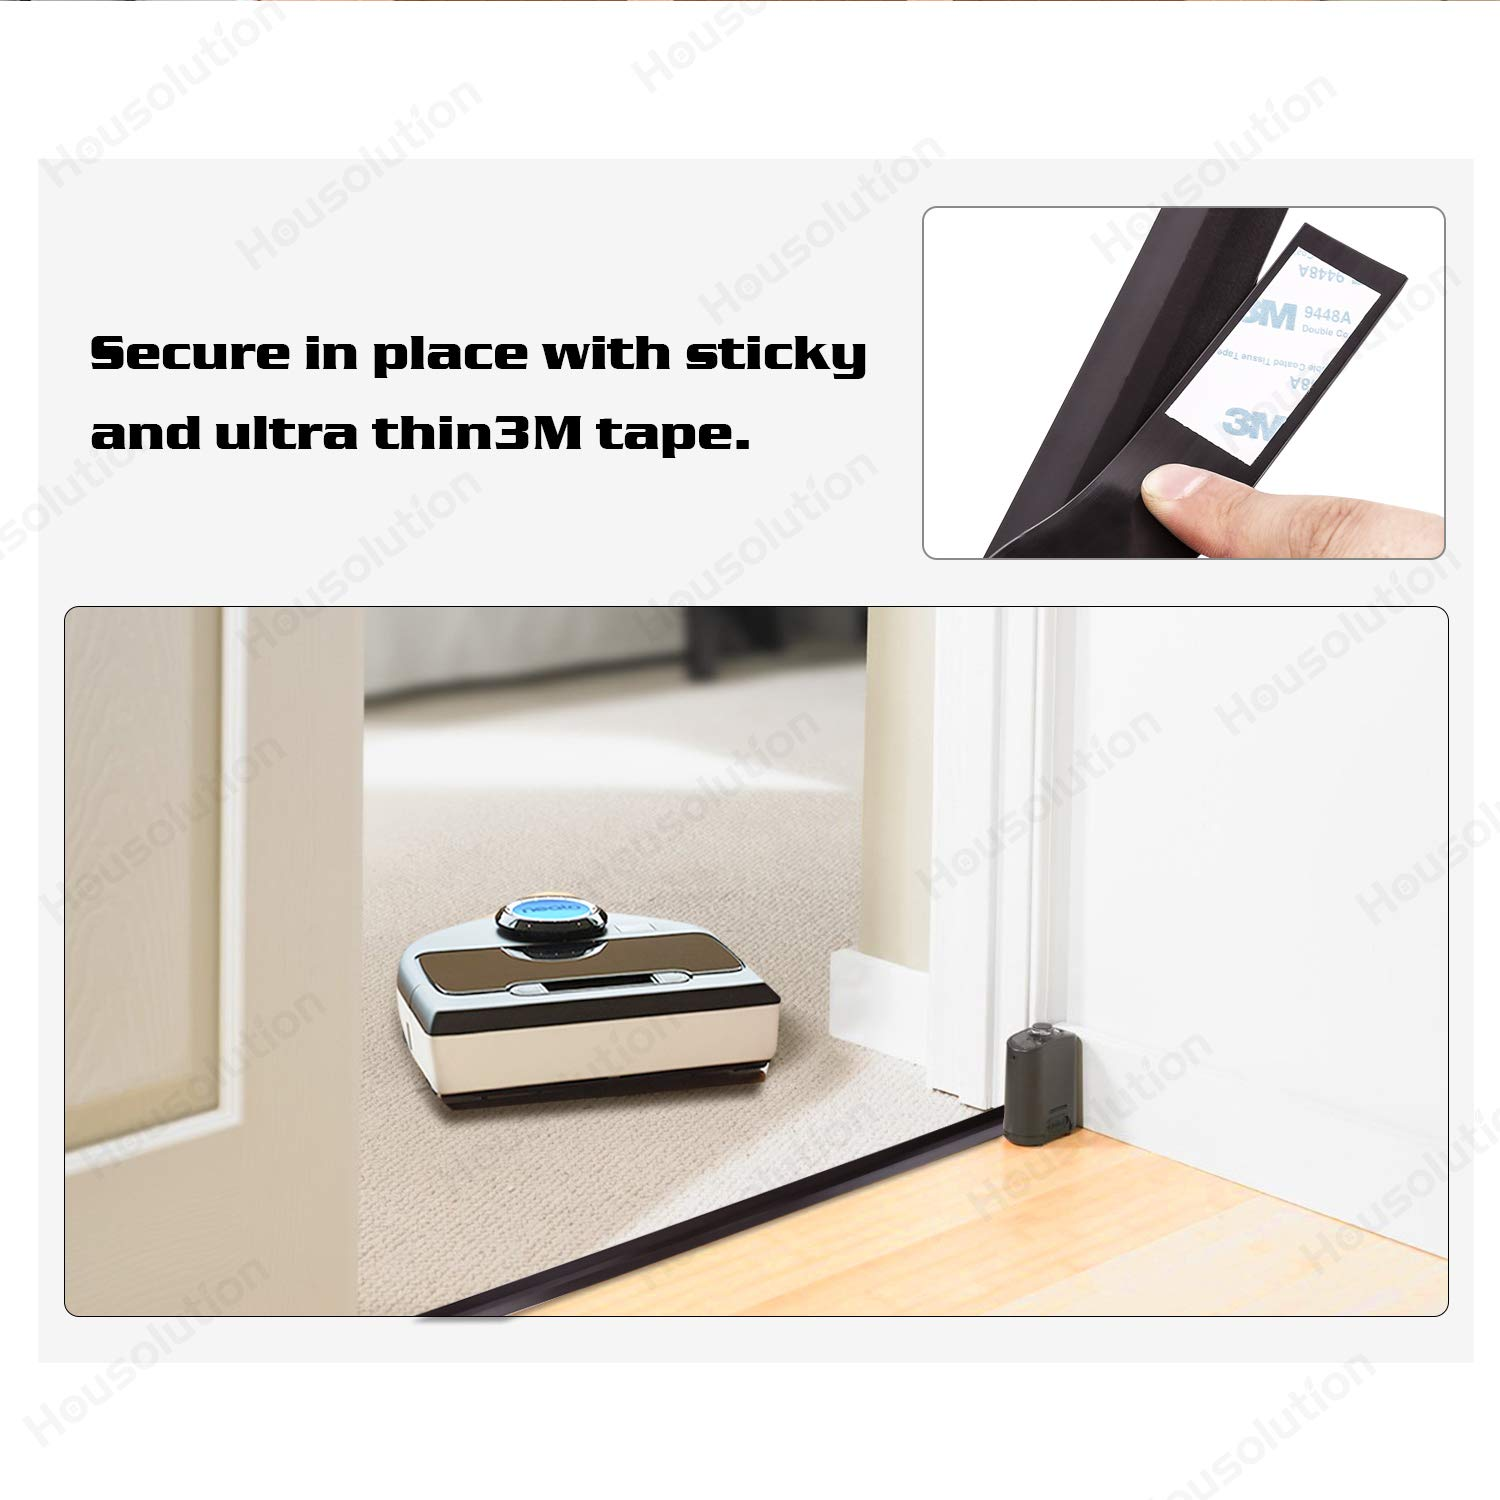 Housolution 4m Cinta Magnética Flexible, Trabaja para Neato Robotic Aspirador, Cintas Alternativas de Accesorios, Negro: Amazon.es: Electrónica